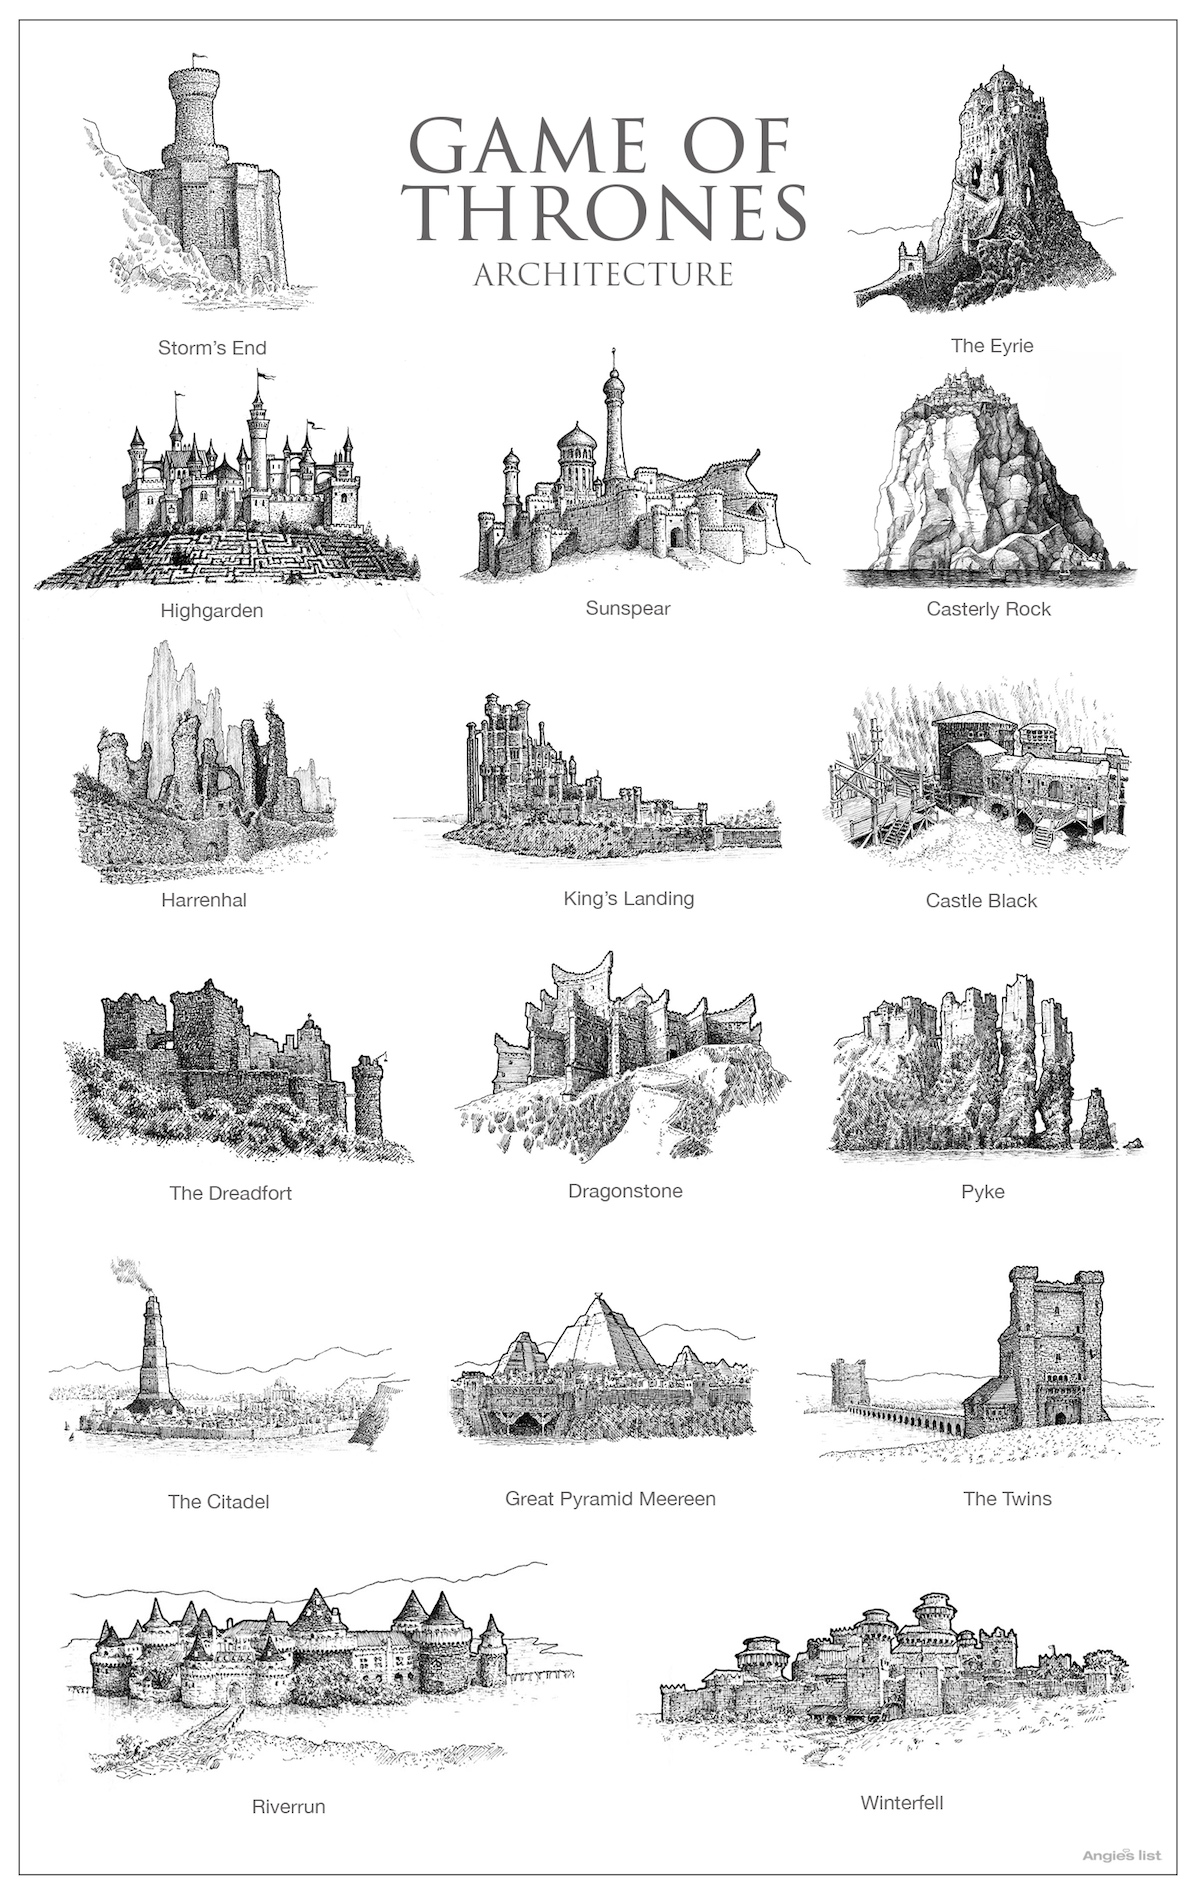 Game of Thrones Architecture